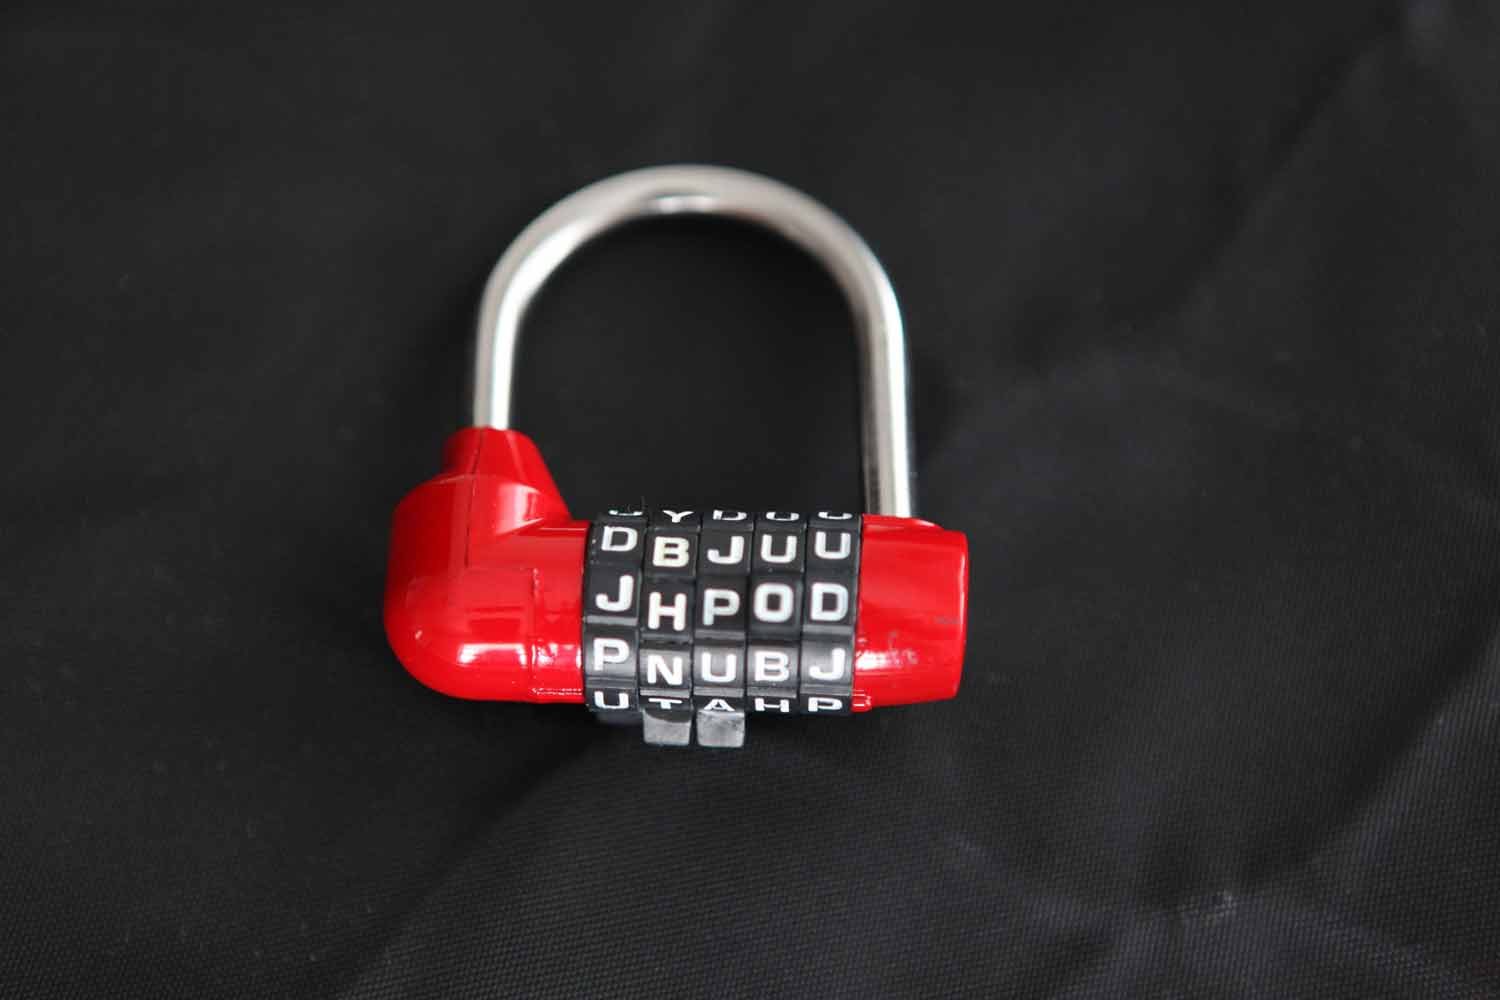 The package panther 5-Dial Combination Padlock